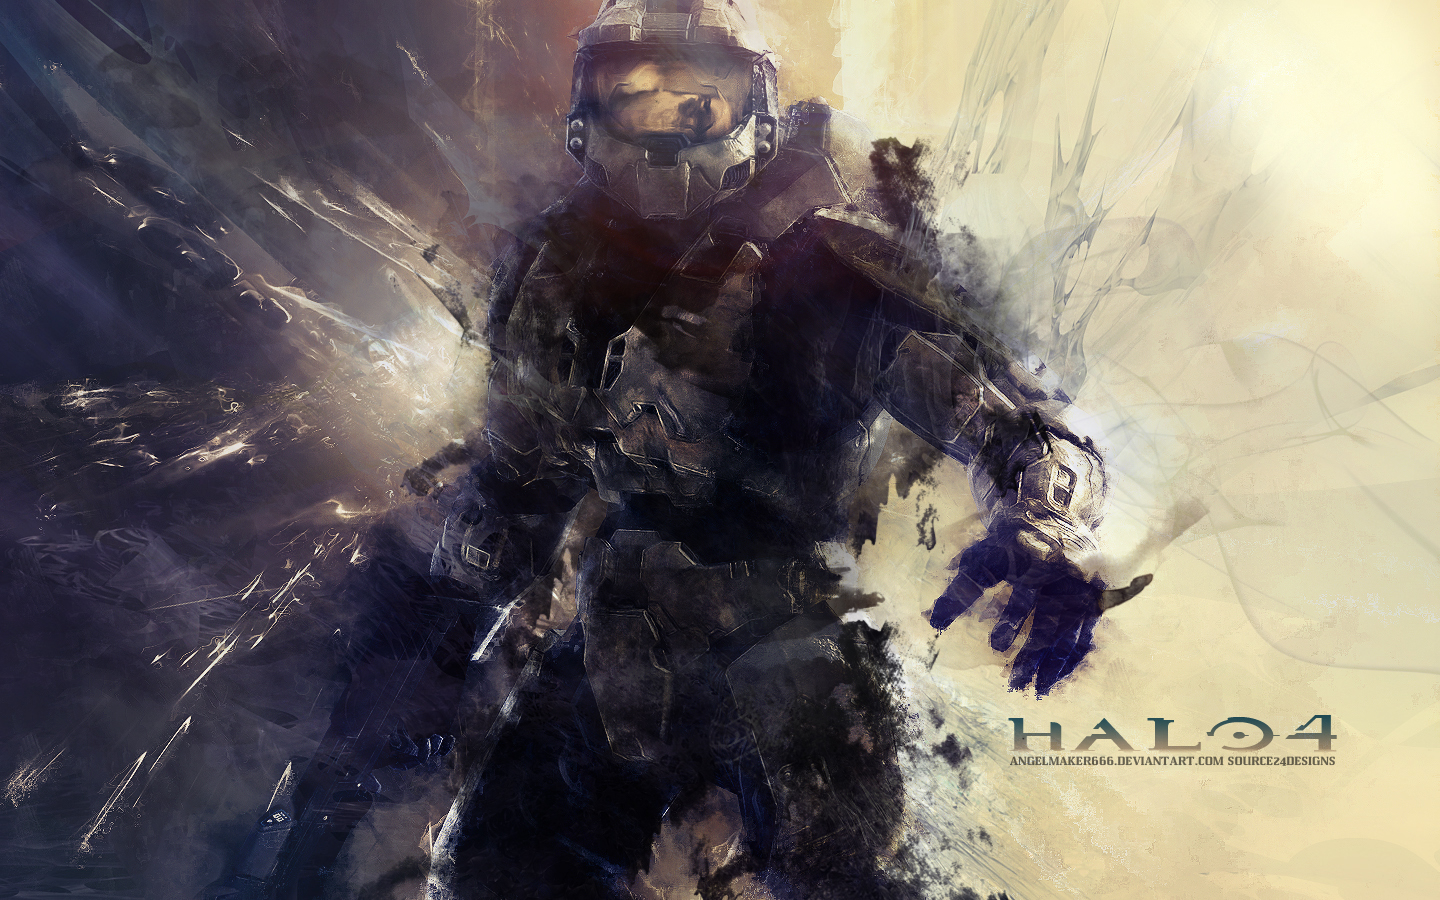 halo 4 wallpaper by ishaanmishra customization wallpaper hdtv 1440x900